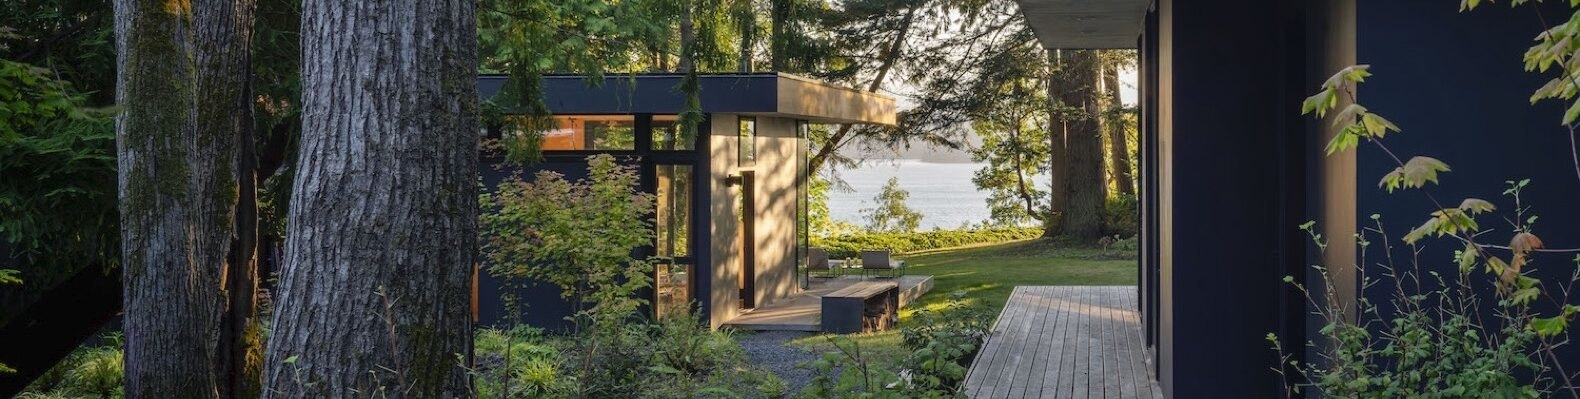 black modern cabin in forest with outdoor deck